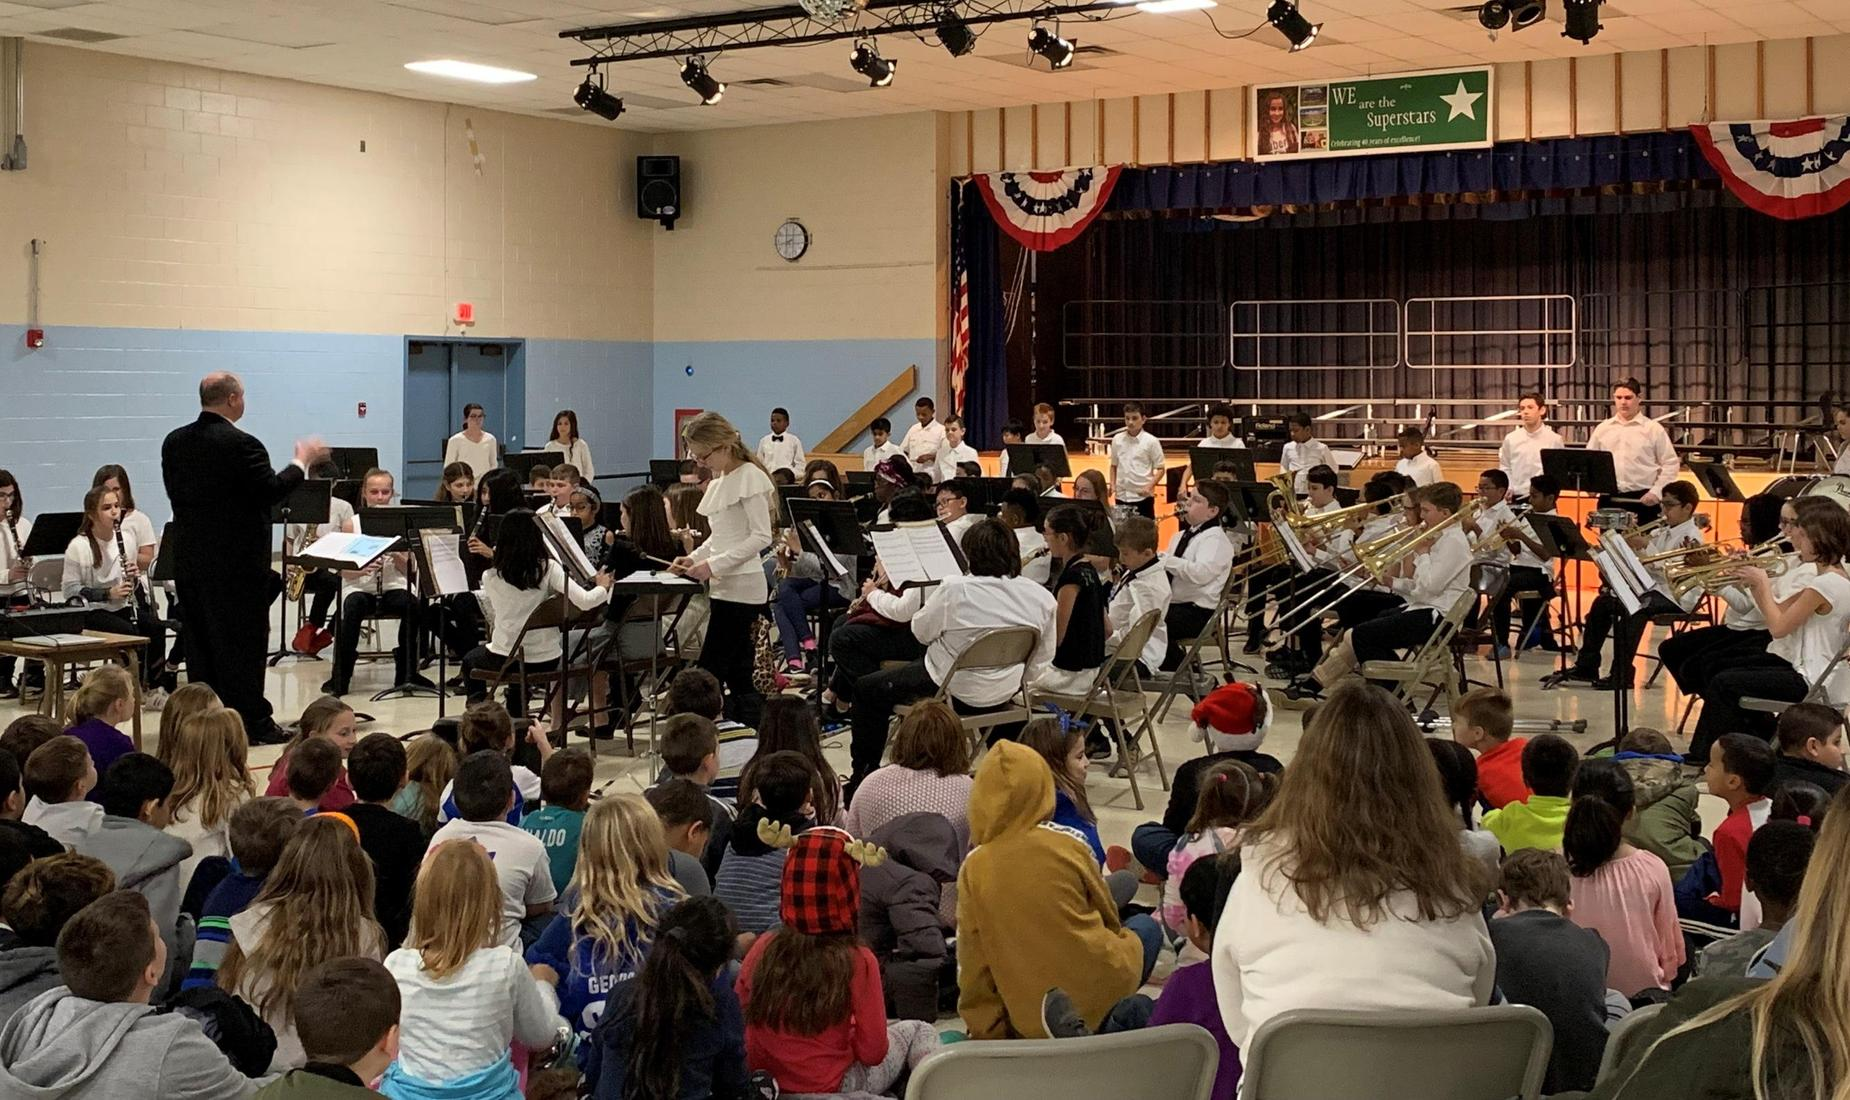 Elementary Band performs their winter/holiday concert for their classmates. Boys and girls are dress in white tops and black pants.